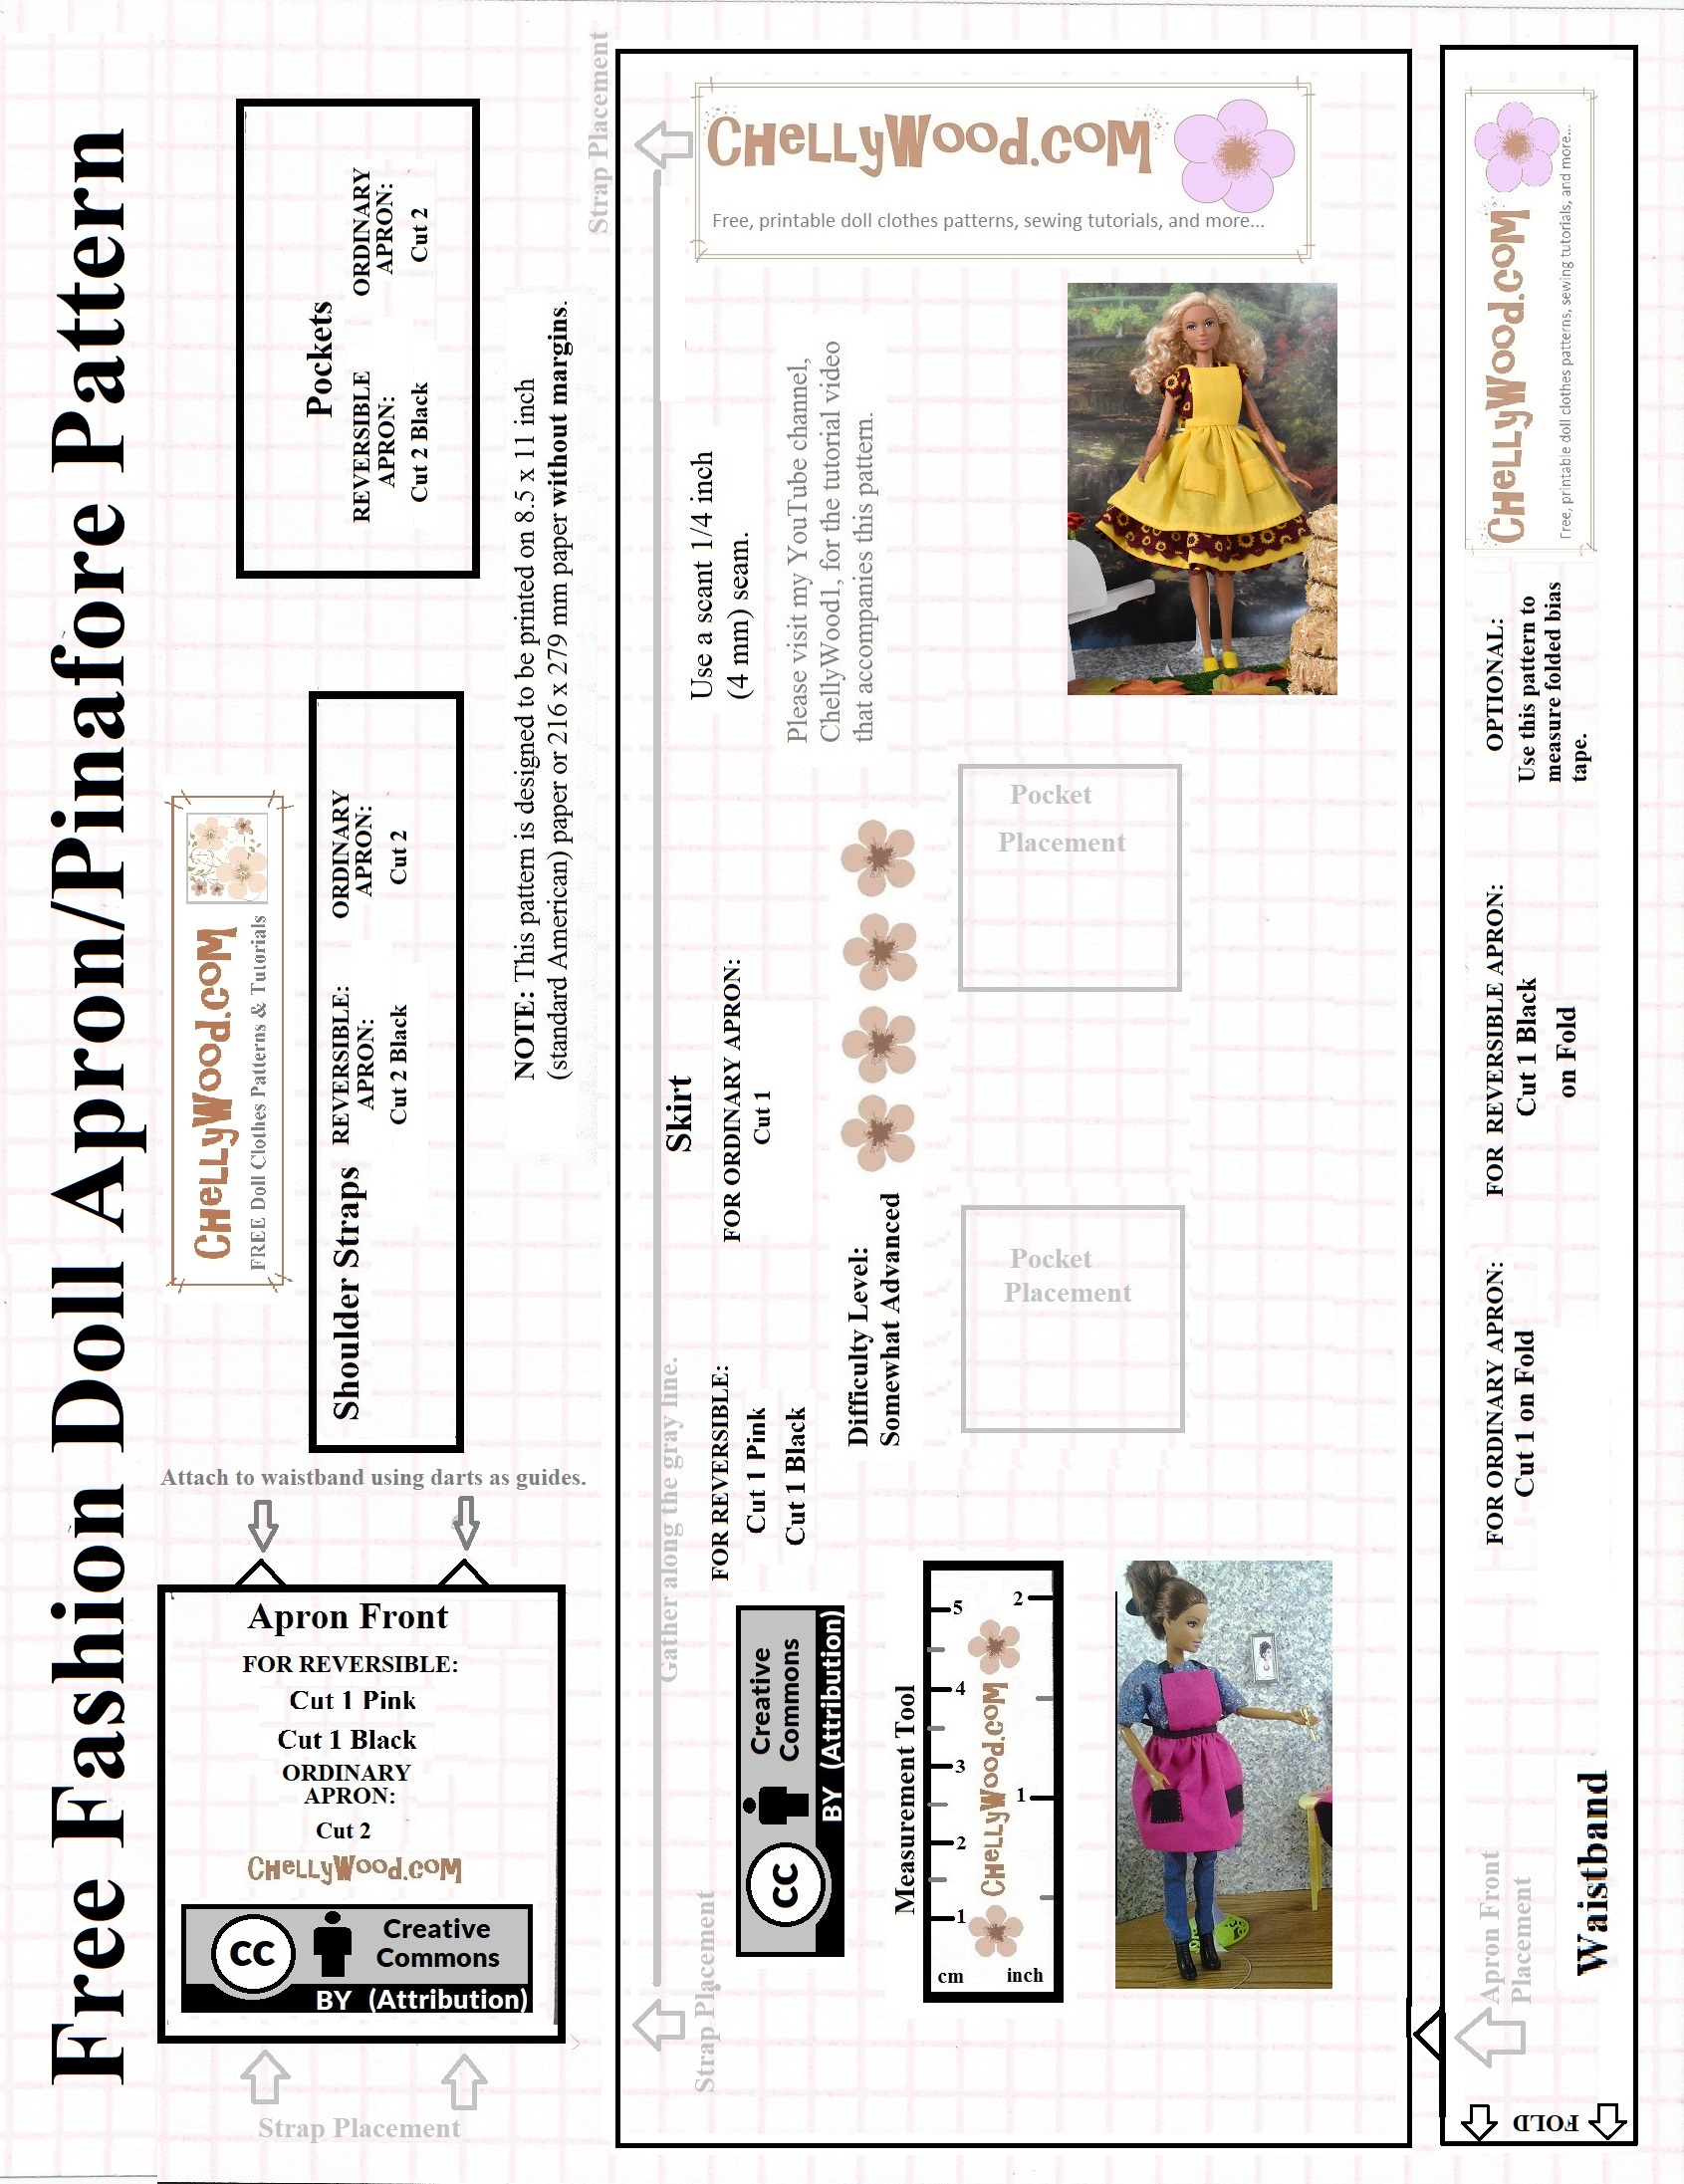 picture regarding Free Printable Apron Patterns named Absolutely free Printable Sewing Routine for a Model Doll Apron